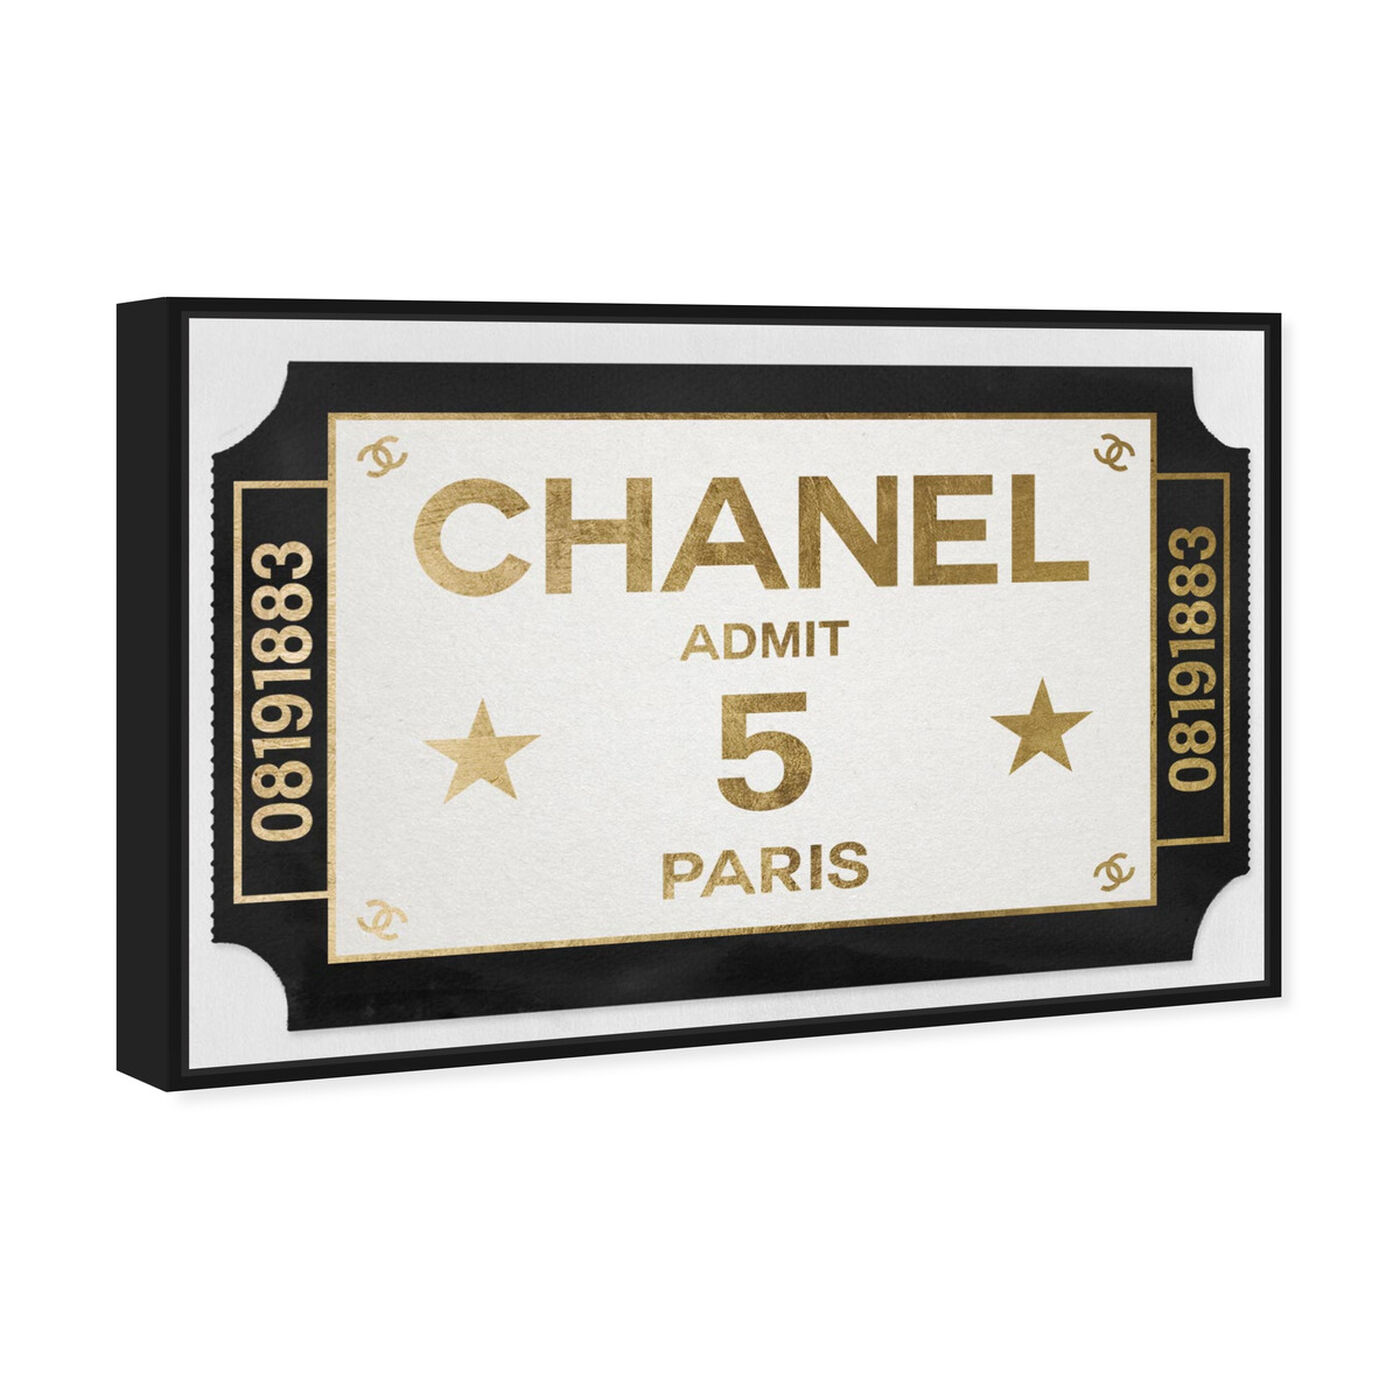 Angled view of Ticket Admit One Paris featuring fashion and glam and road signs art.